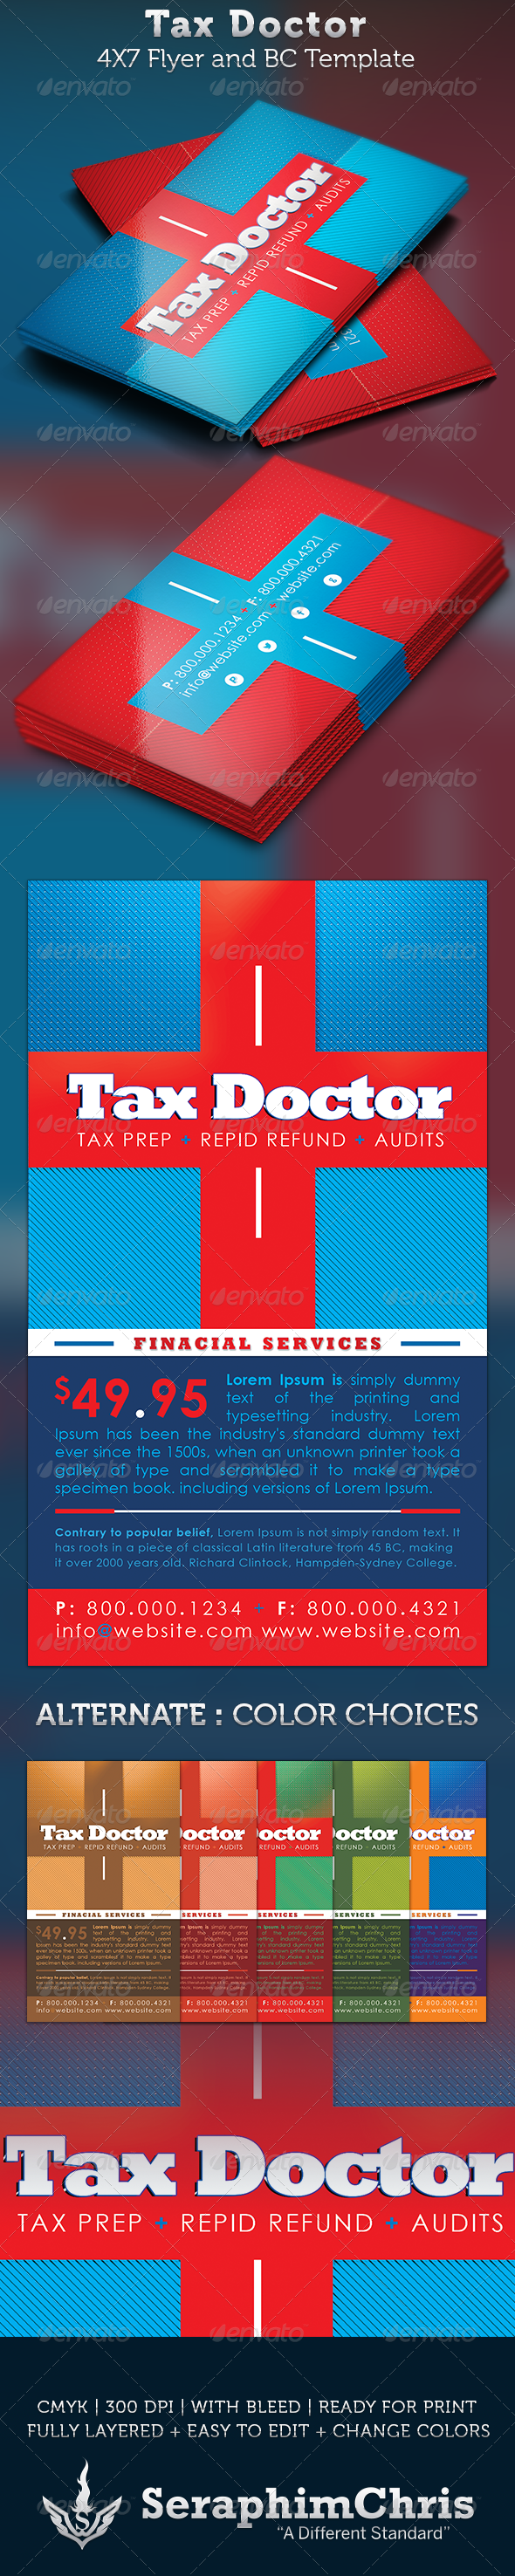 Tax Doctor Business Card and Flyer Template | Flyer template ...